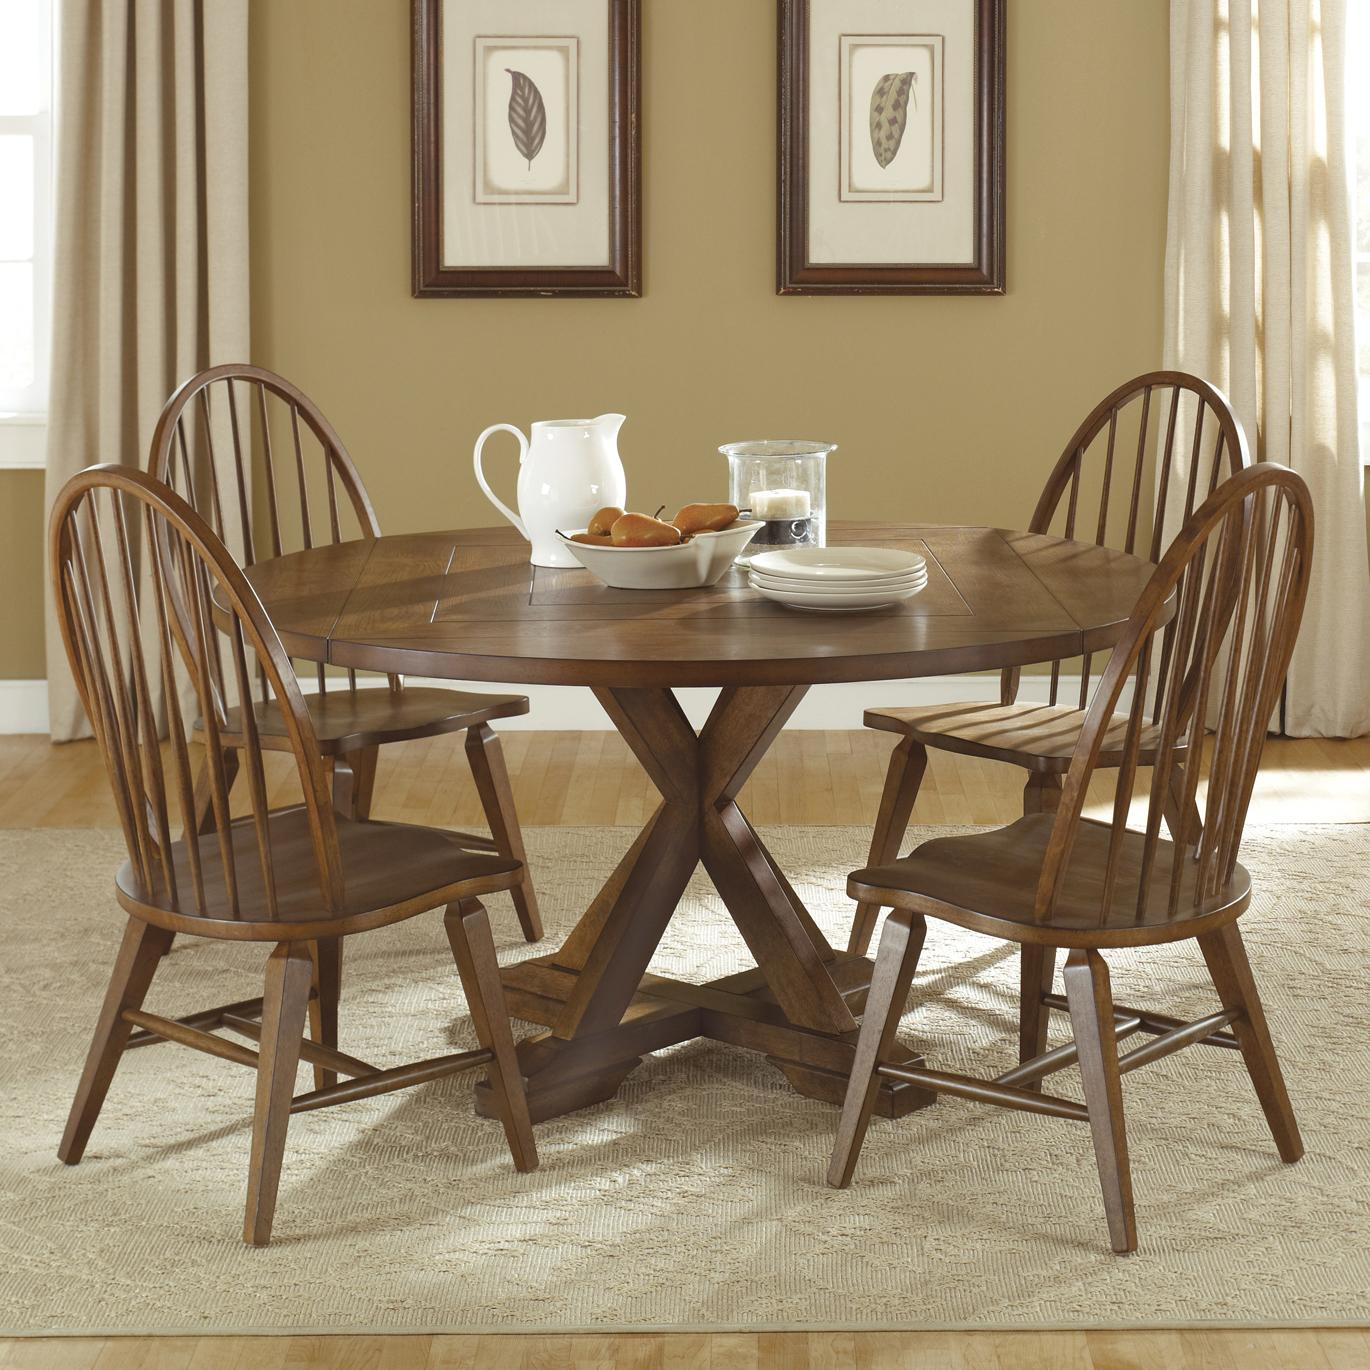 Liberty Furniture Hearthstone 5 Piece Pedestal Table Set - Item Number: 382-DR-SET17